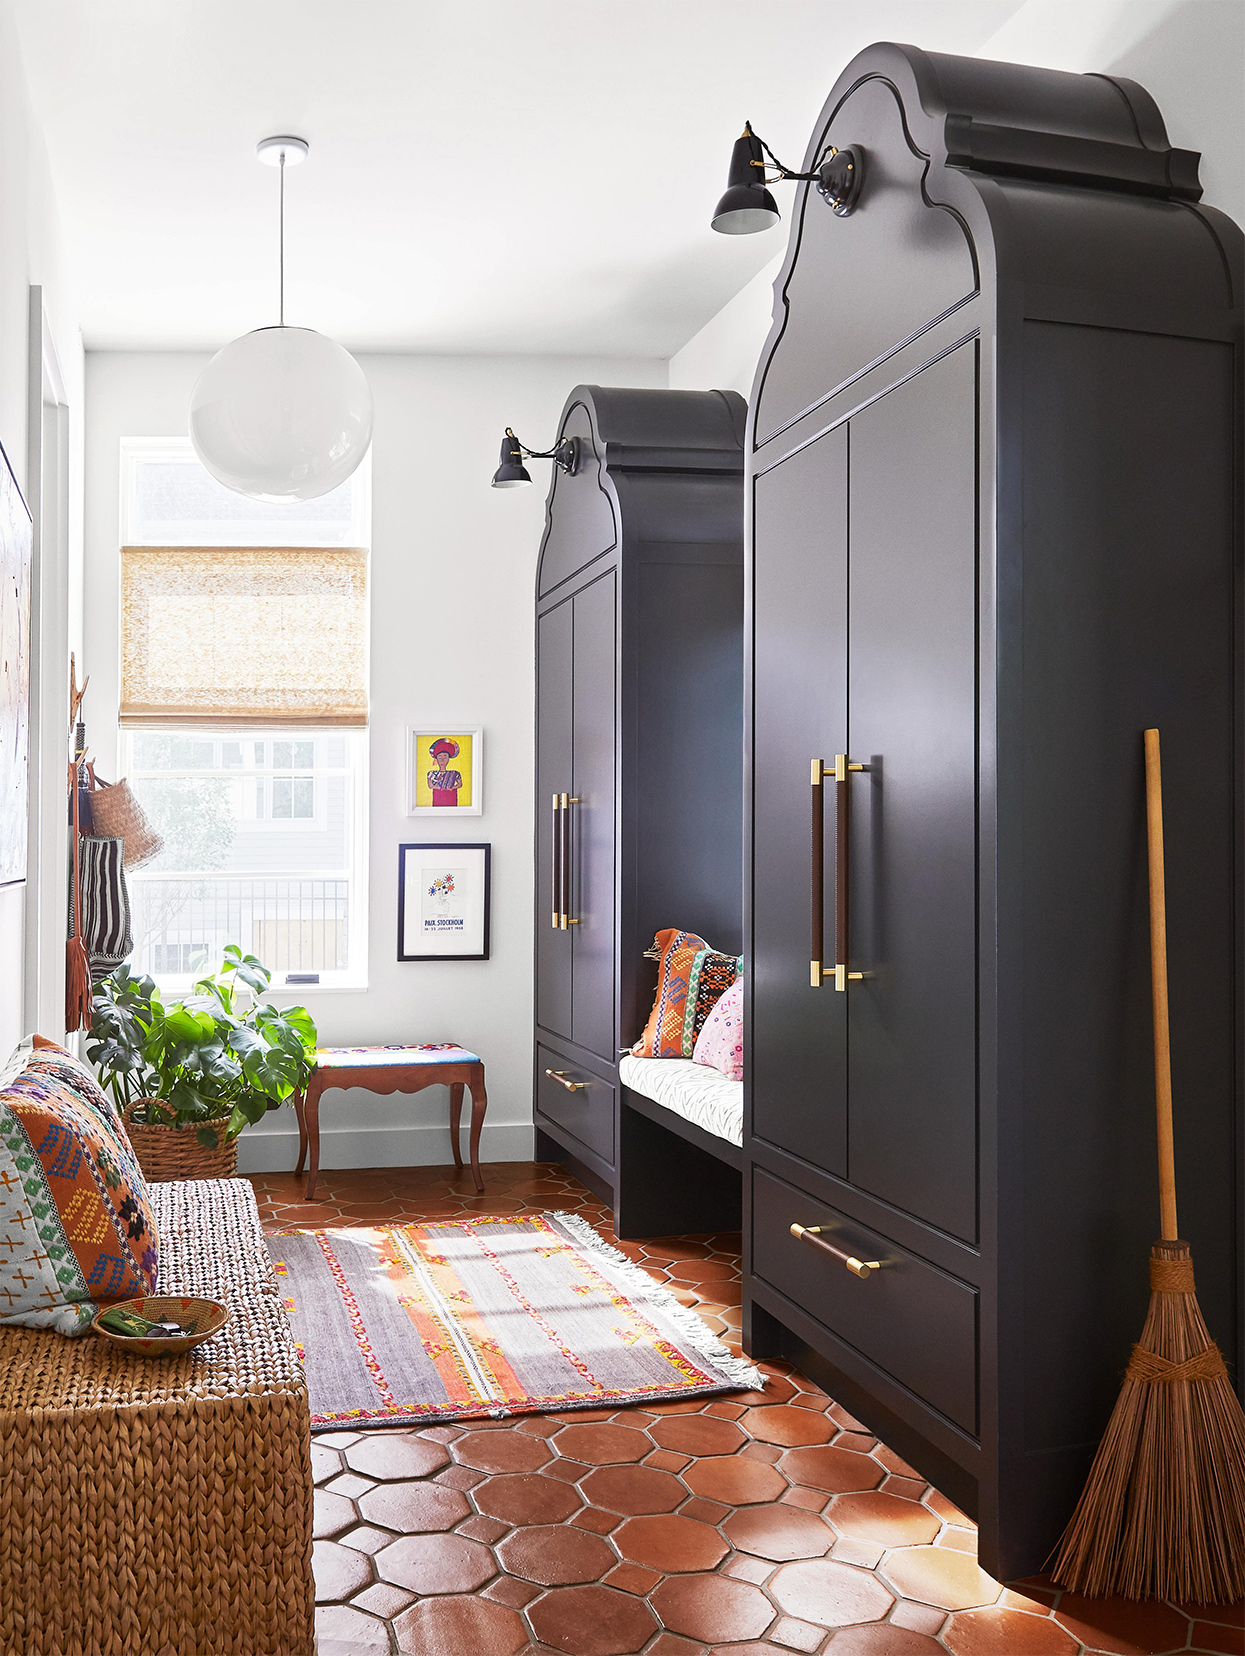 black twin storage armoires and terra-cotta floor tiles in mudroom